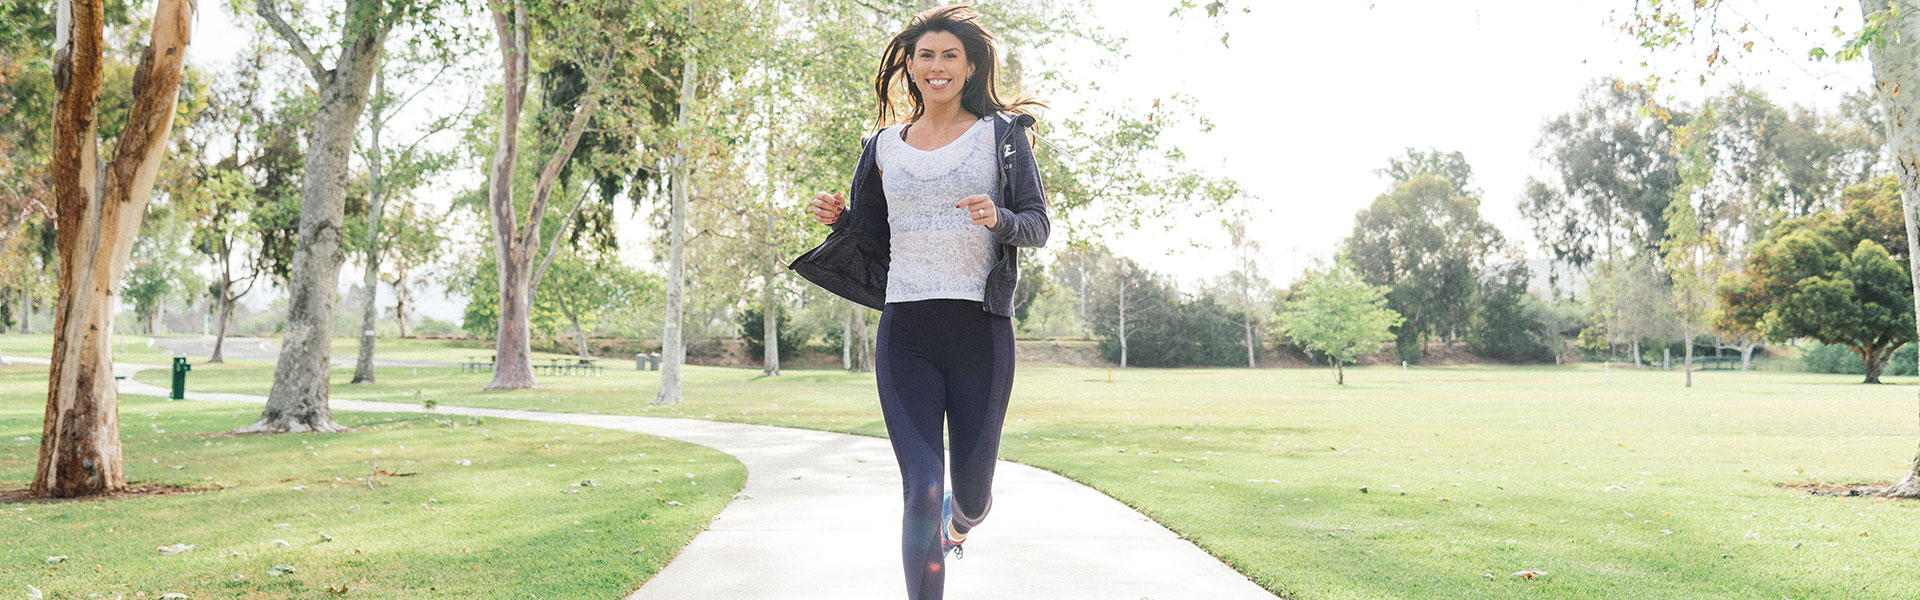 Women's Fitness Health Day (image)